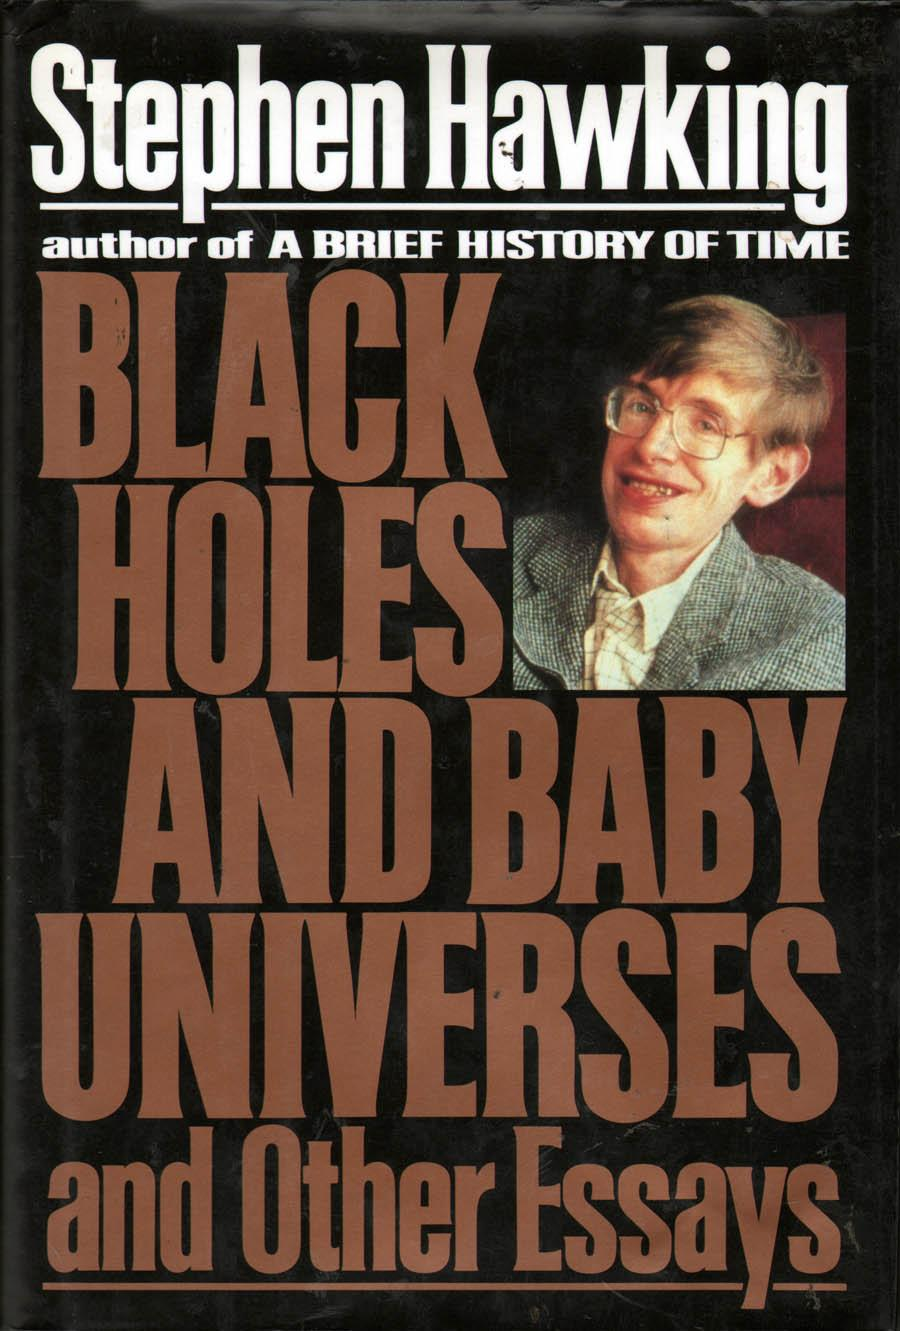 004 Essay Example Black Holes And Baby Universes Other Unique Essays Review Ebook Free Download Amazon Full